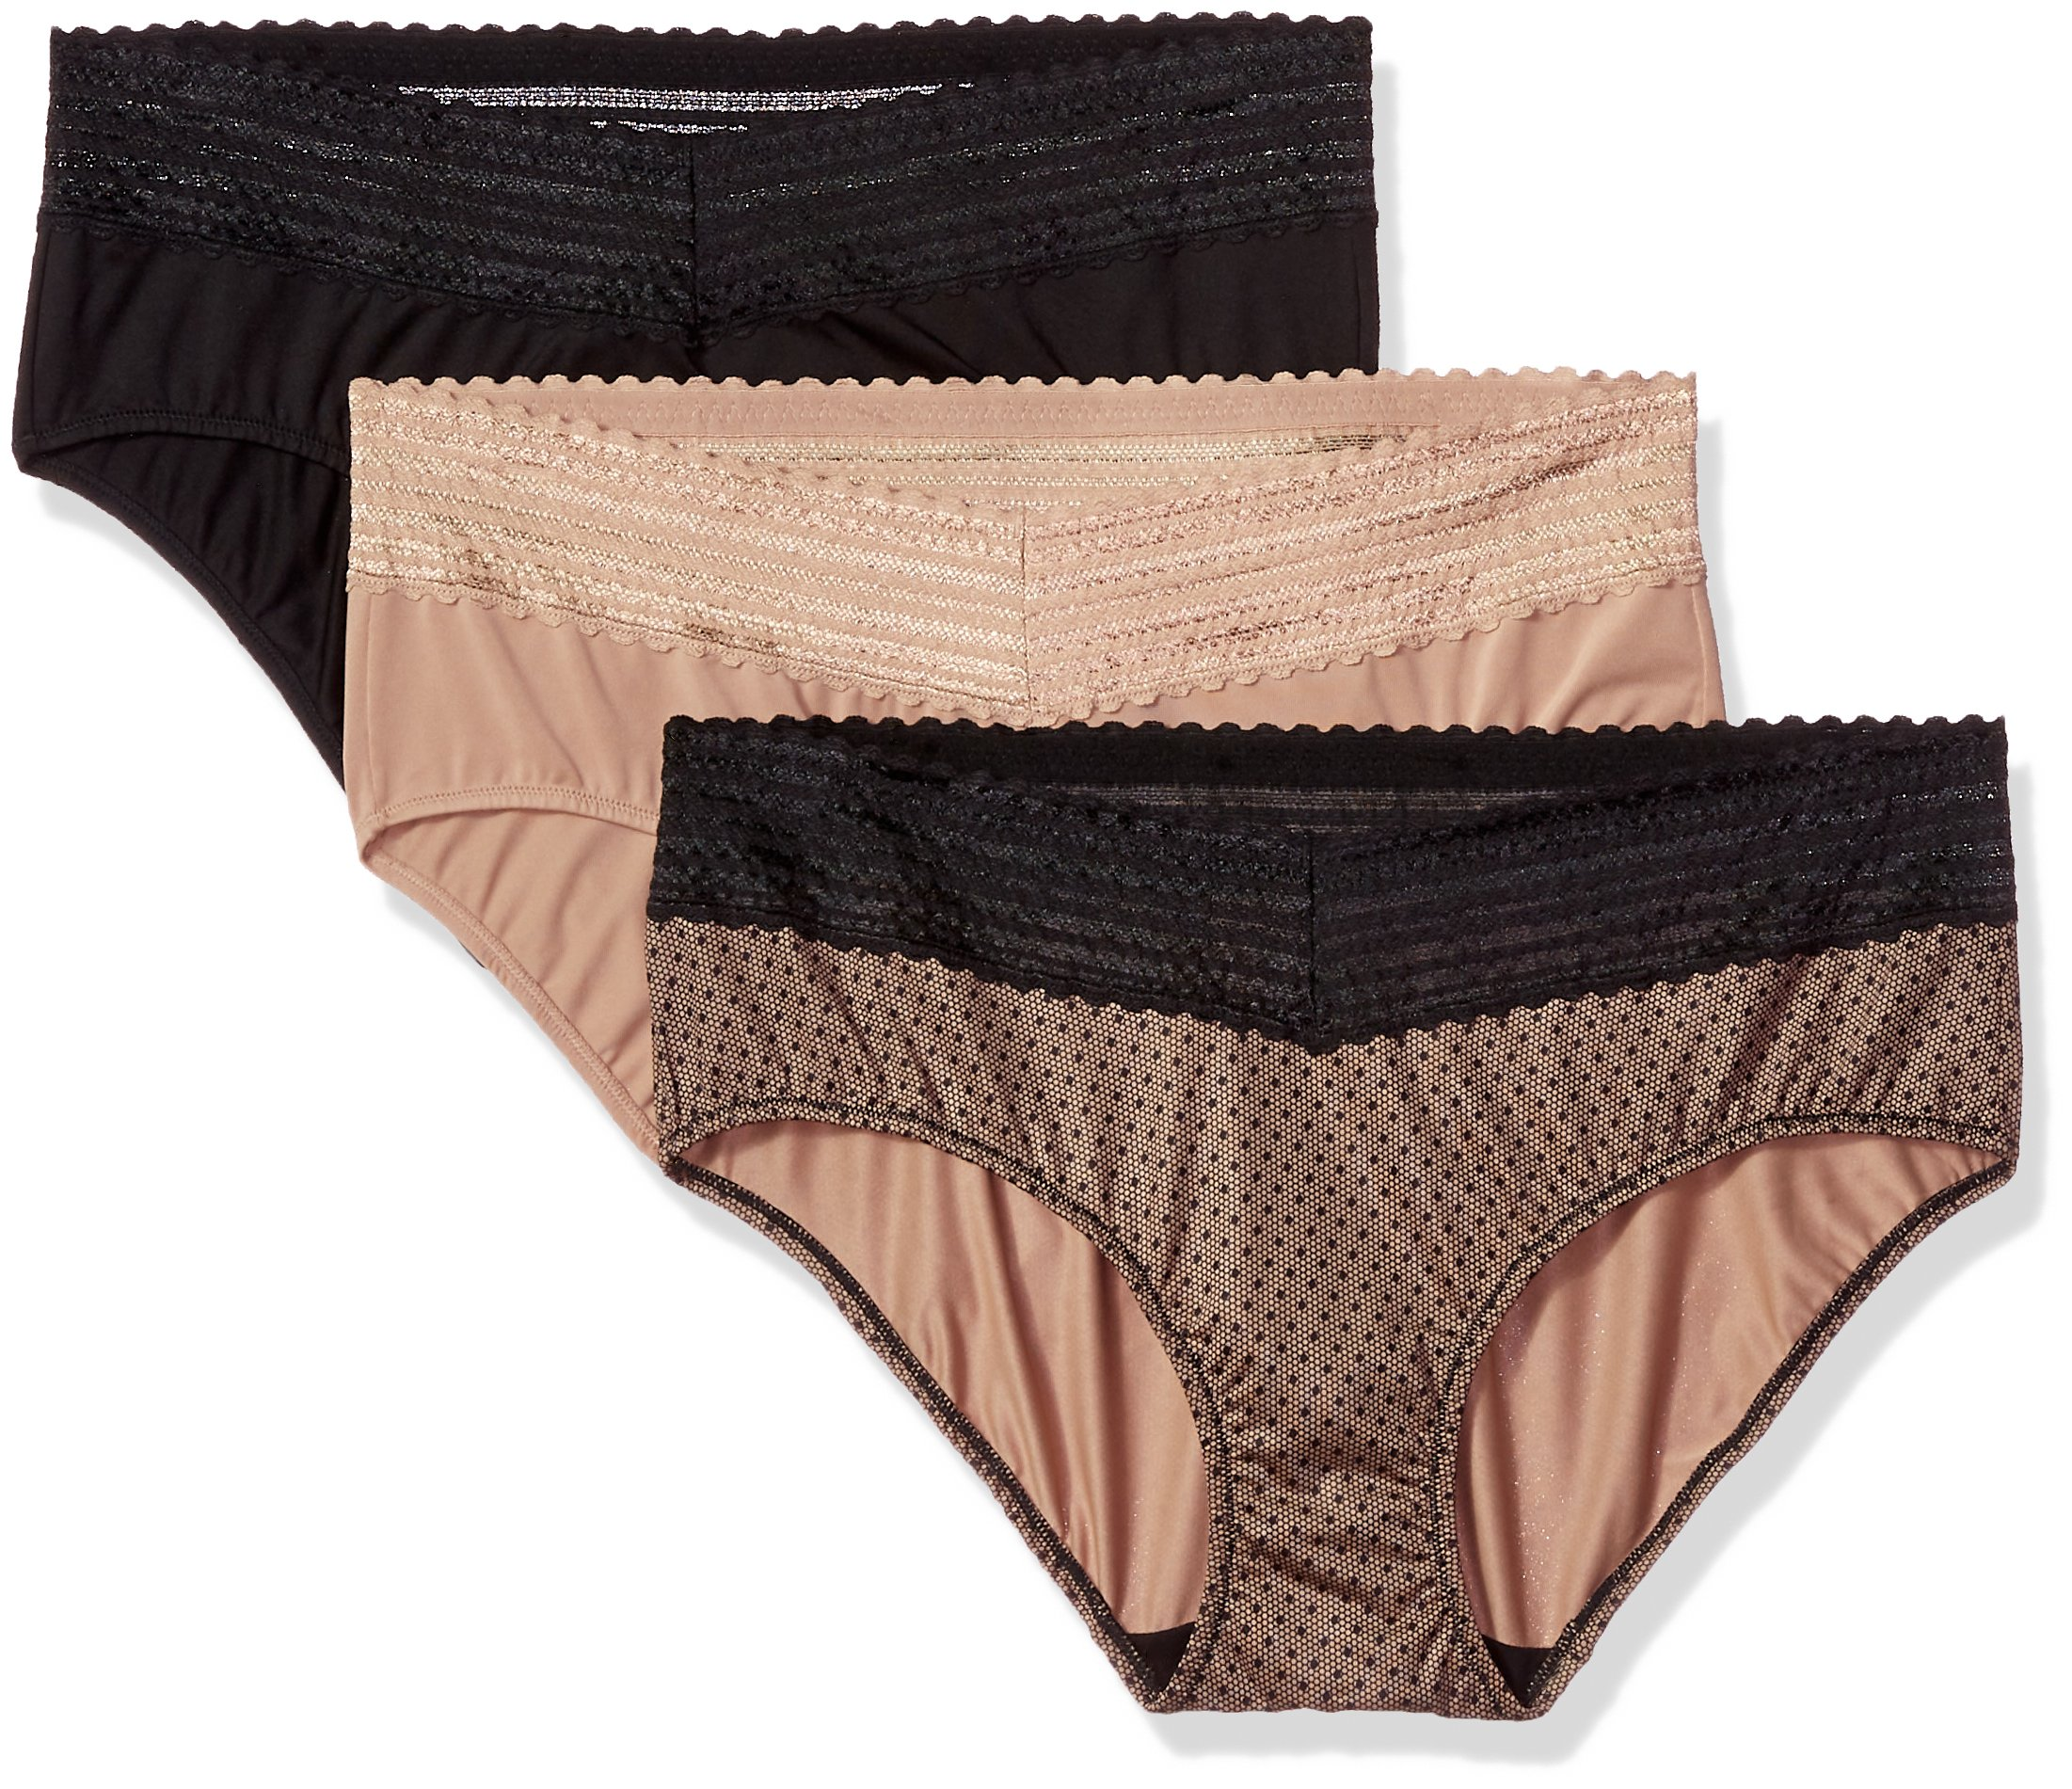 Warner's Women's Blissful Benefits No Muffin Top 3 Pack Lace Hipster Panties, Black/Toasted Almond dot Print, M